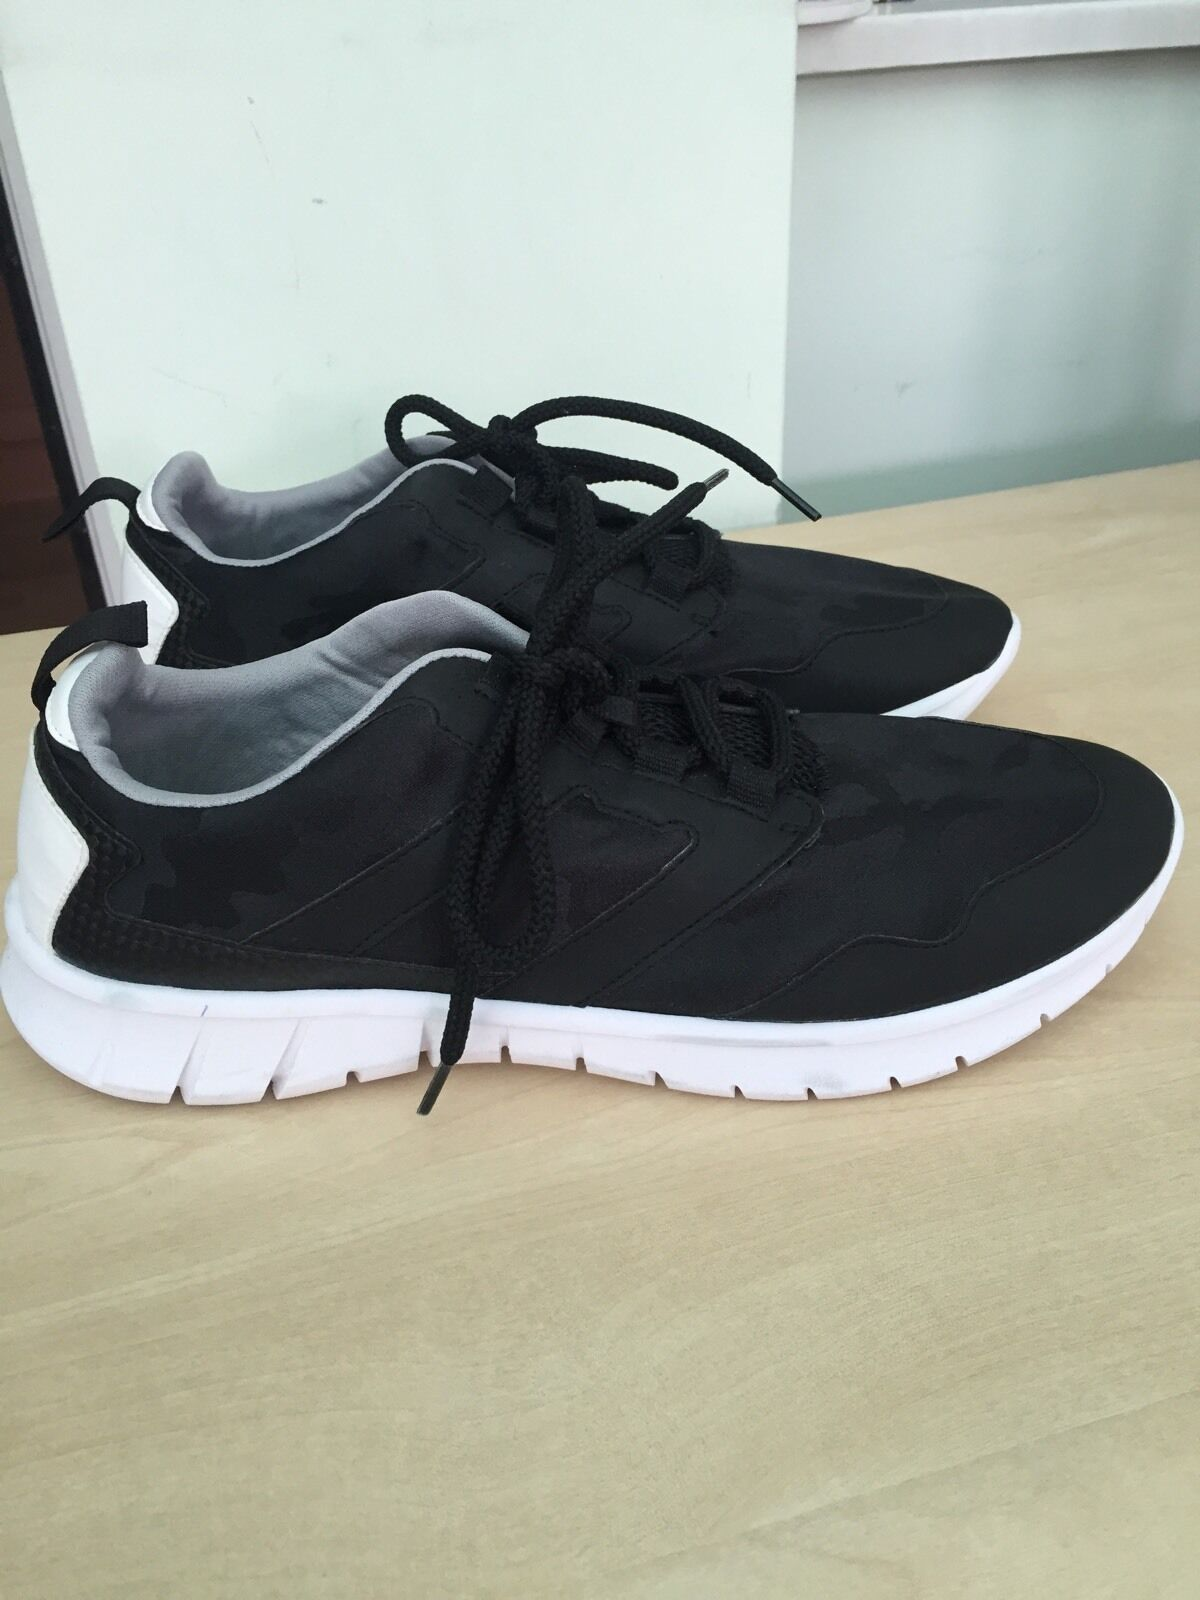 ZARA BLACK SNEAKERS TRAINERS SHOES SIZE UK8/EUR41/US10